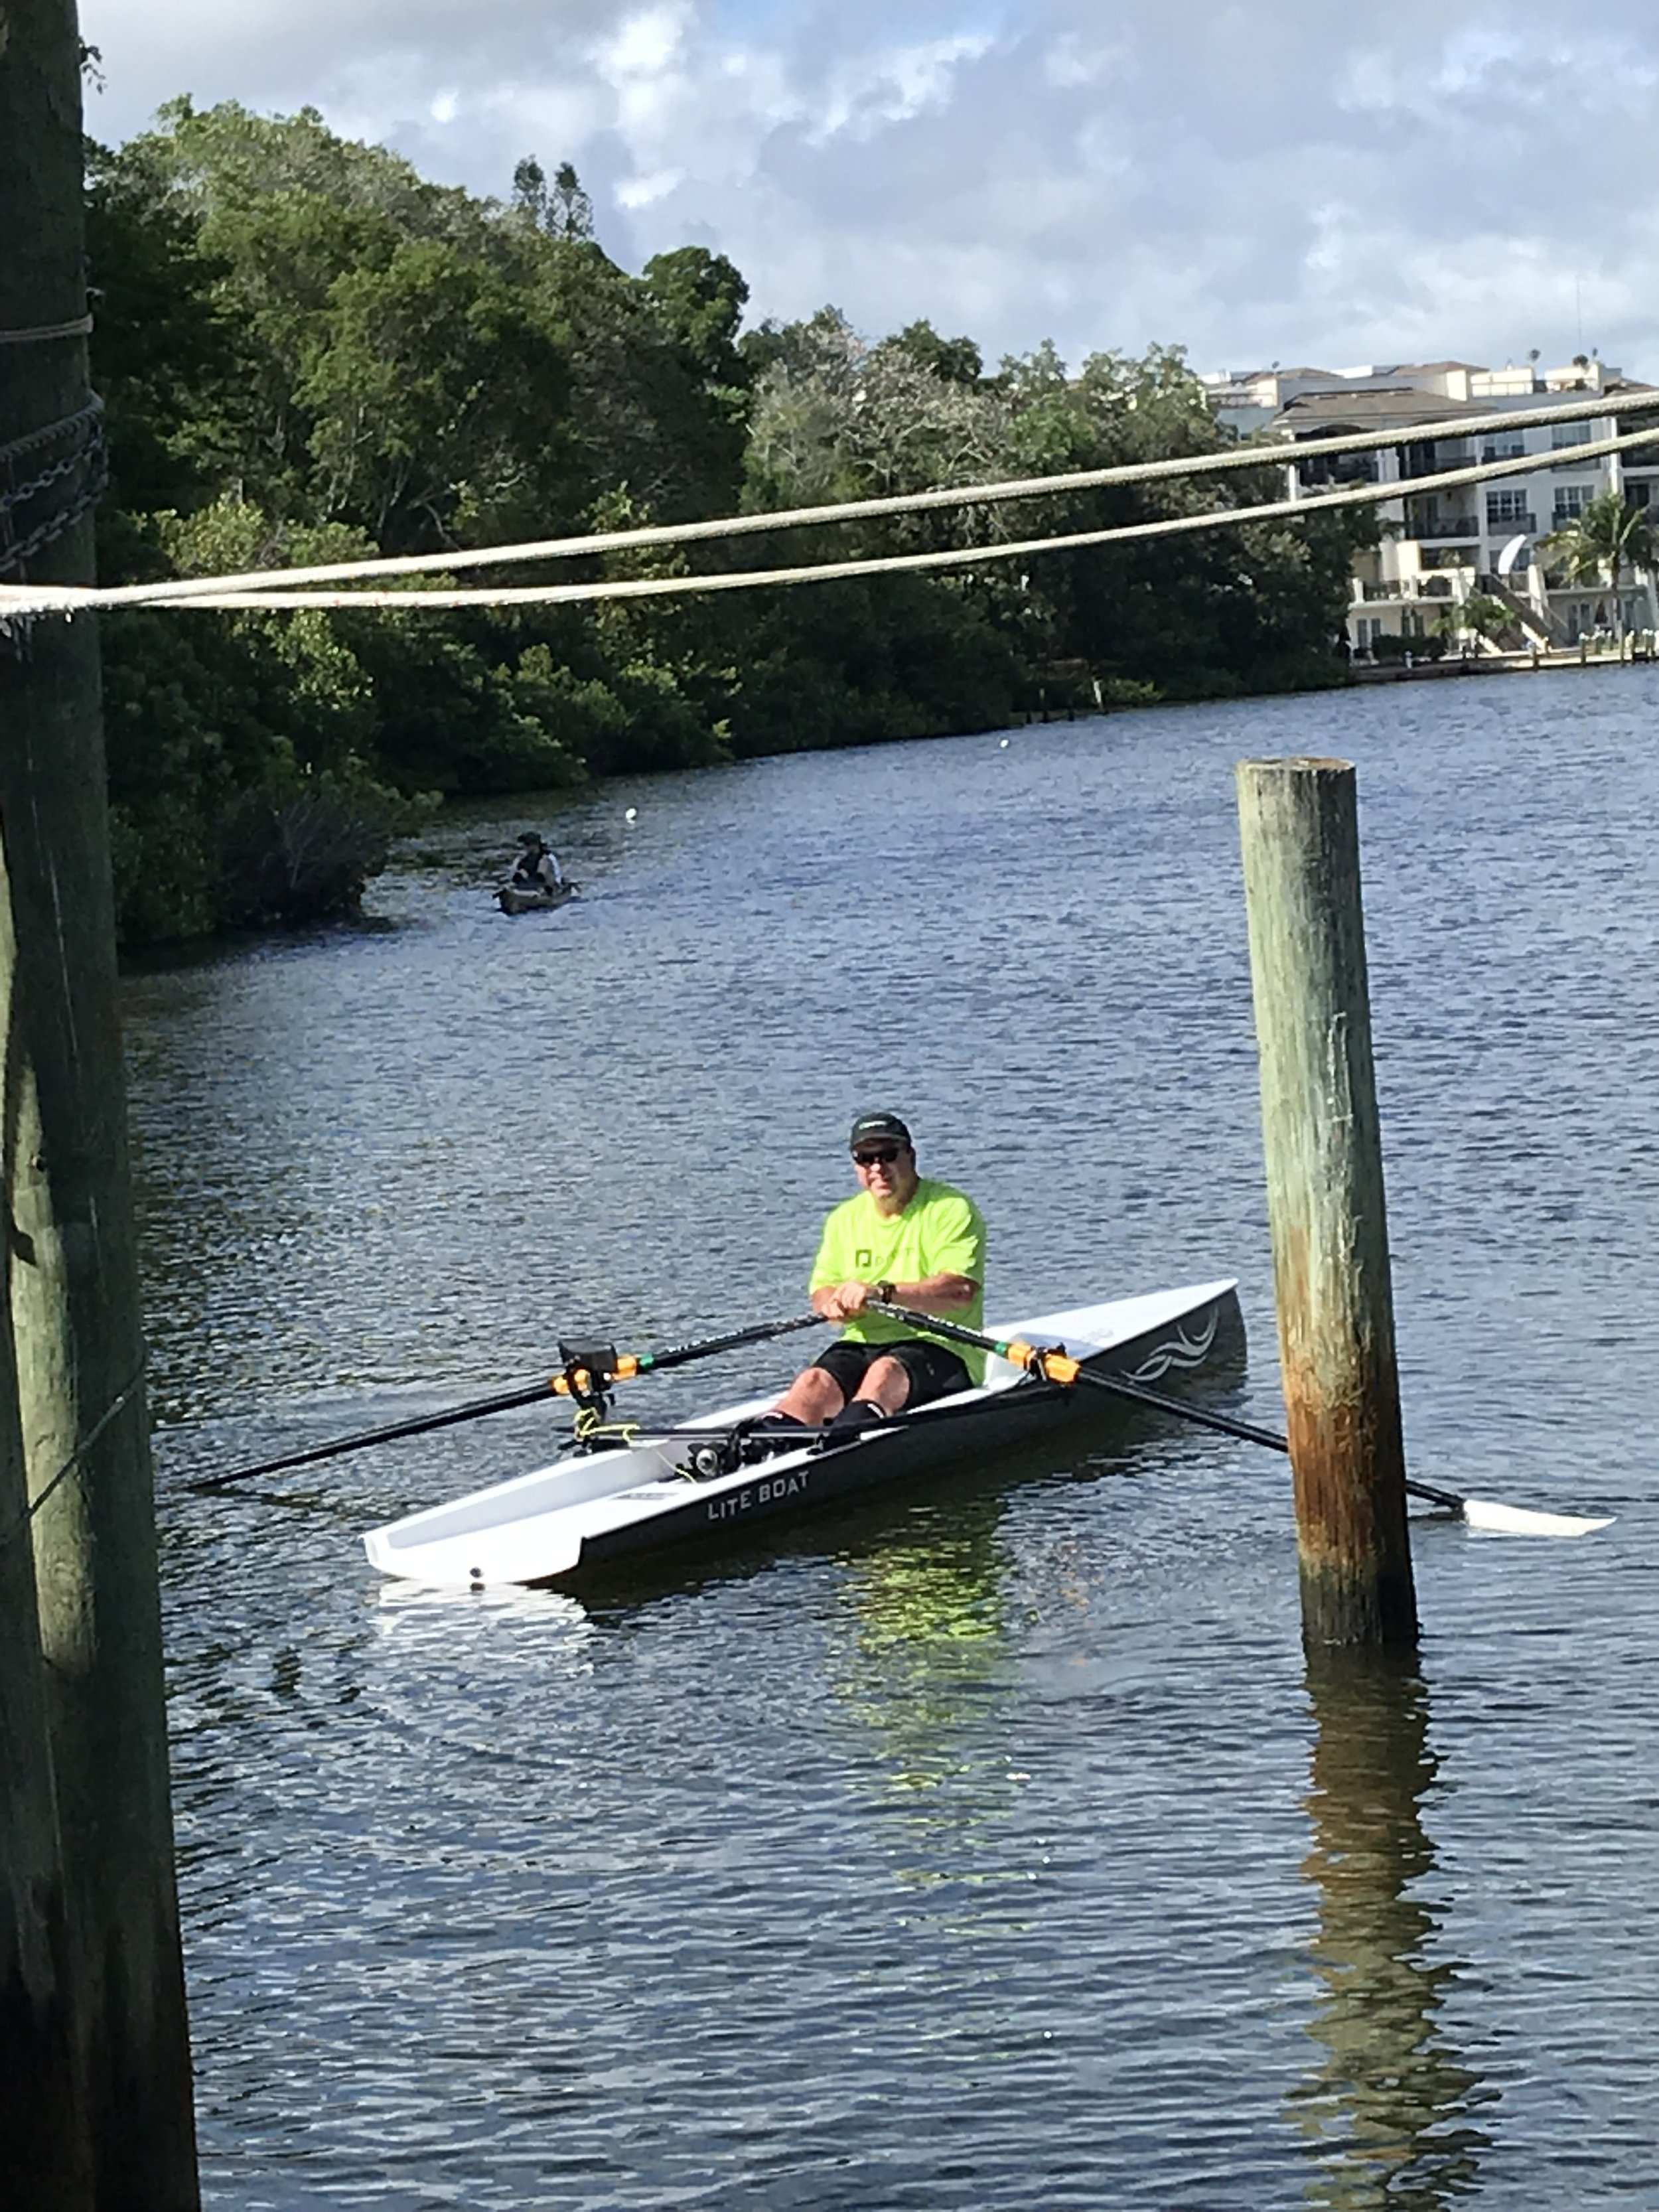 - We had a dedicated rower fly in from Oklahoma City to demo row the LiteBoats. Not only did he travel a great distance, he rowed as a tropical depression was passing by. He said it was perfect as it's always windy where he rows!